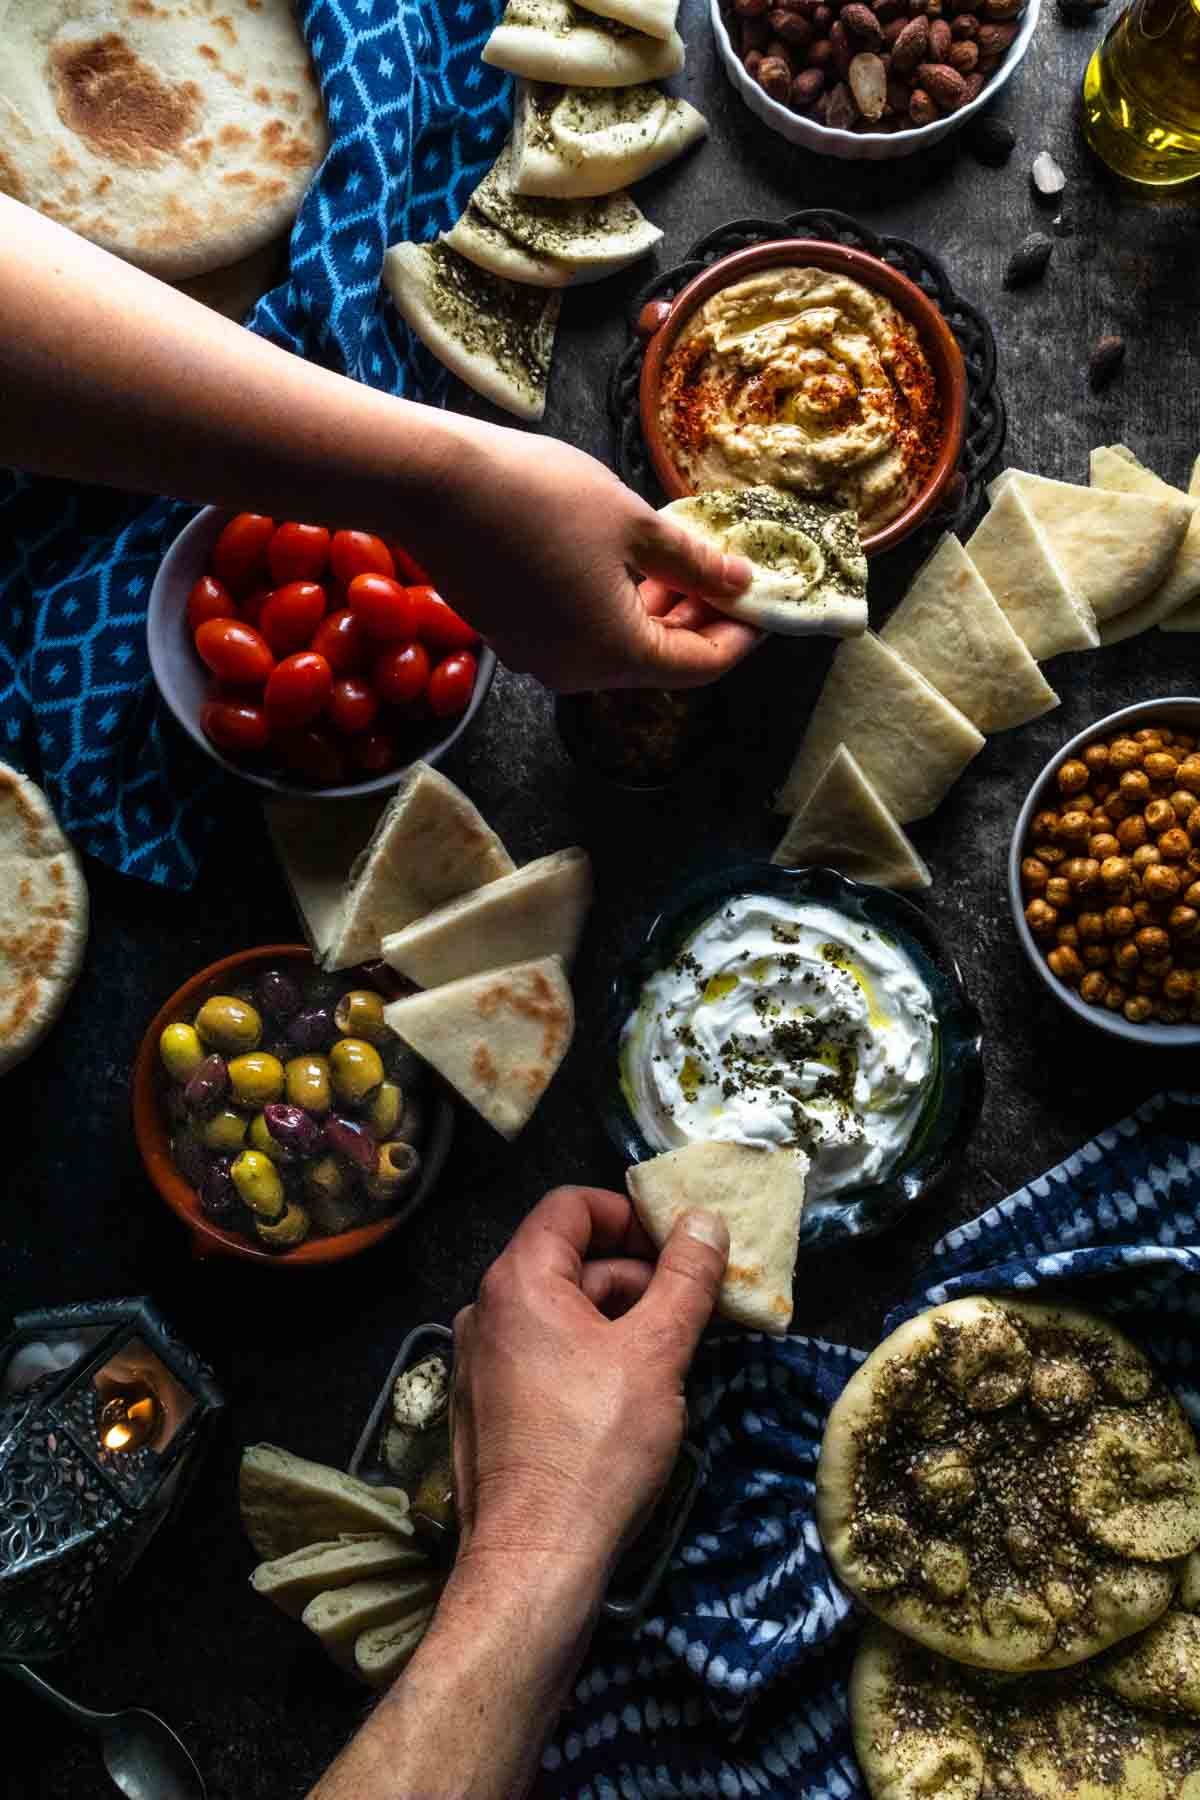 An overhead photo of two hands dipping pita bread into a colrful assortment of mezze including hummus and tzatziki dips.